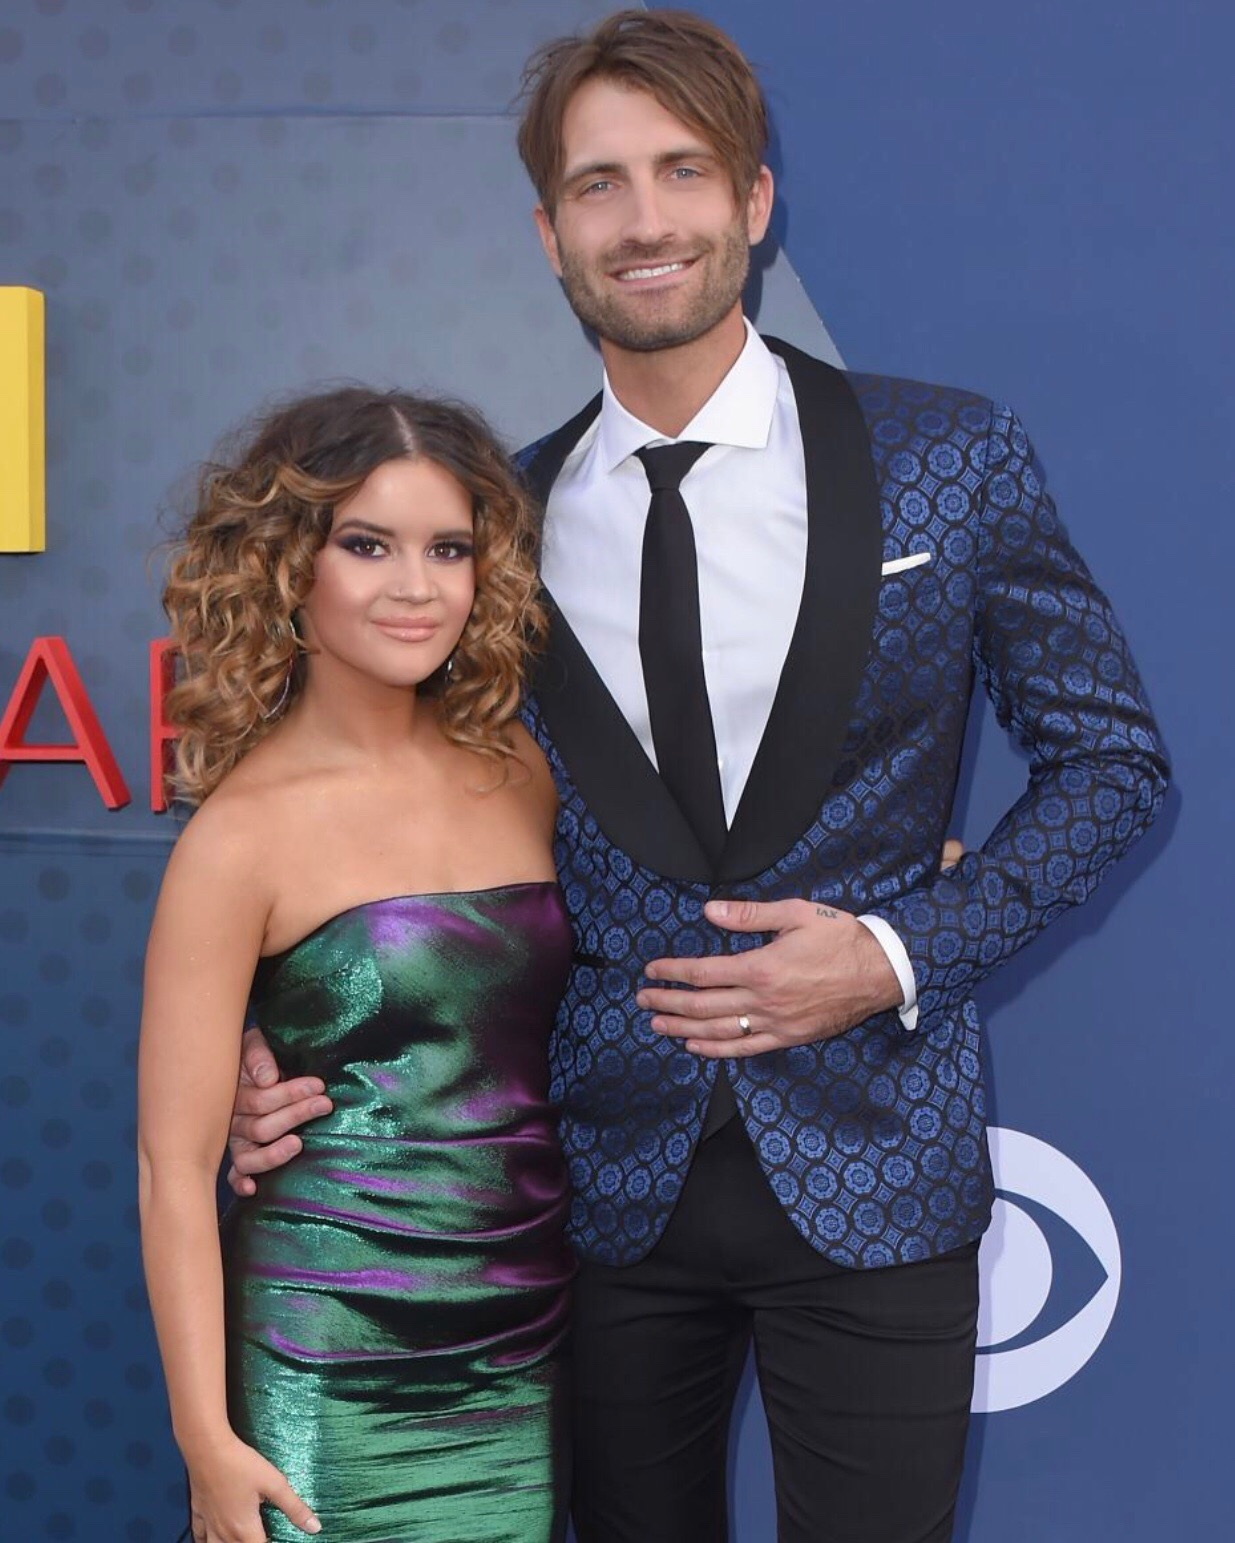 Maren and her husband Ryan Hurd. Photo: GettyImages.